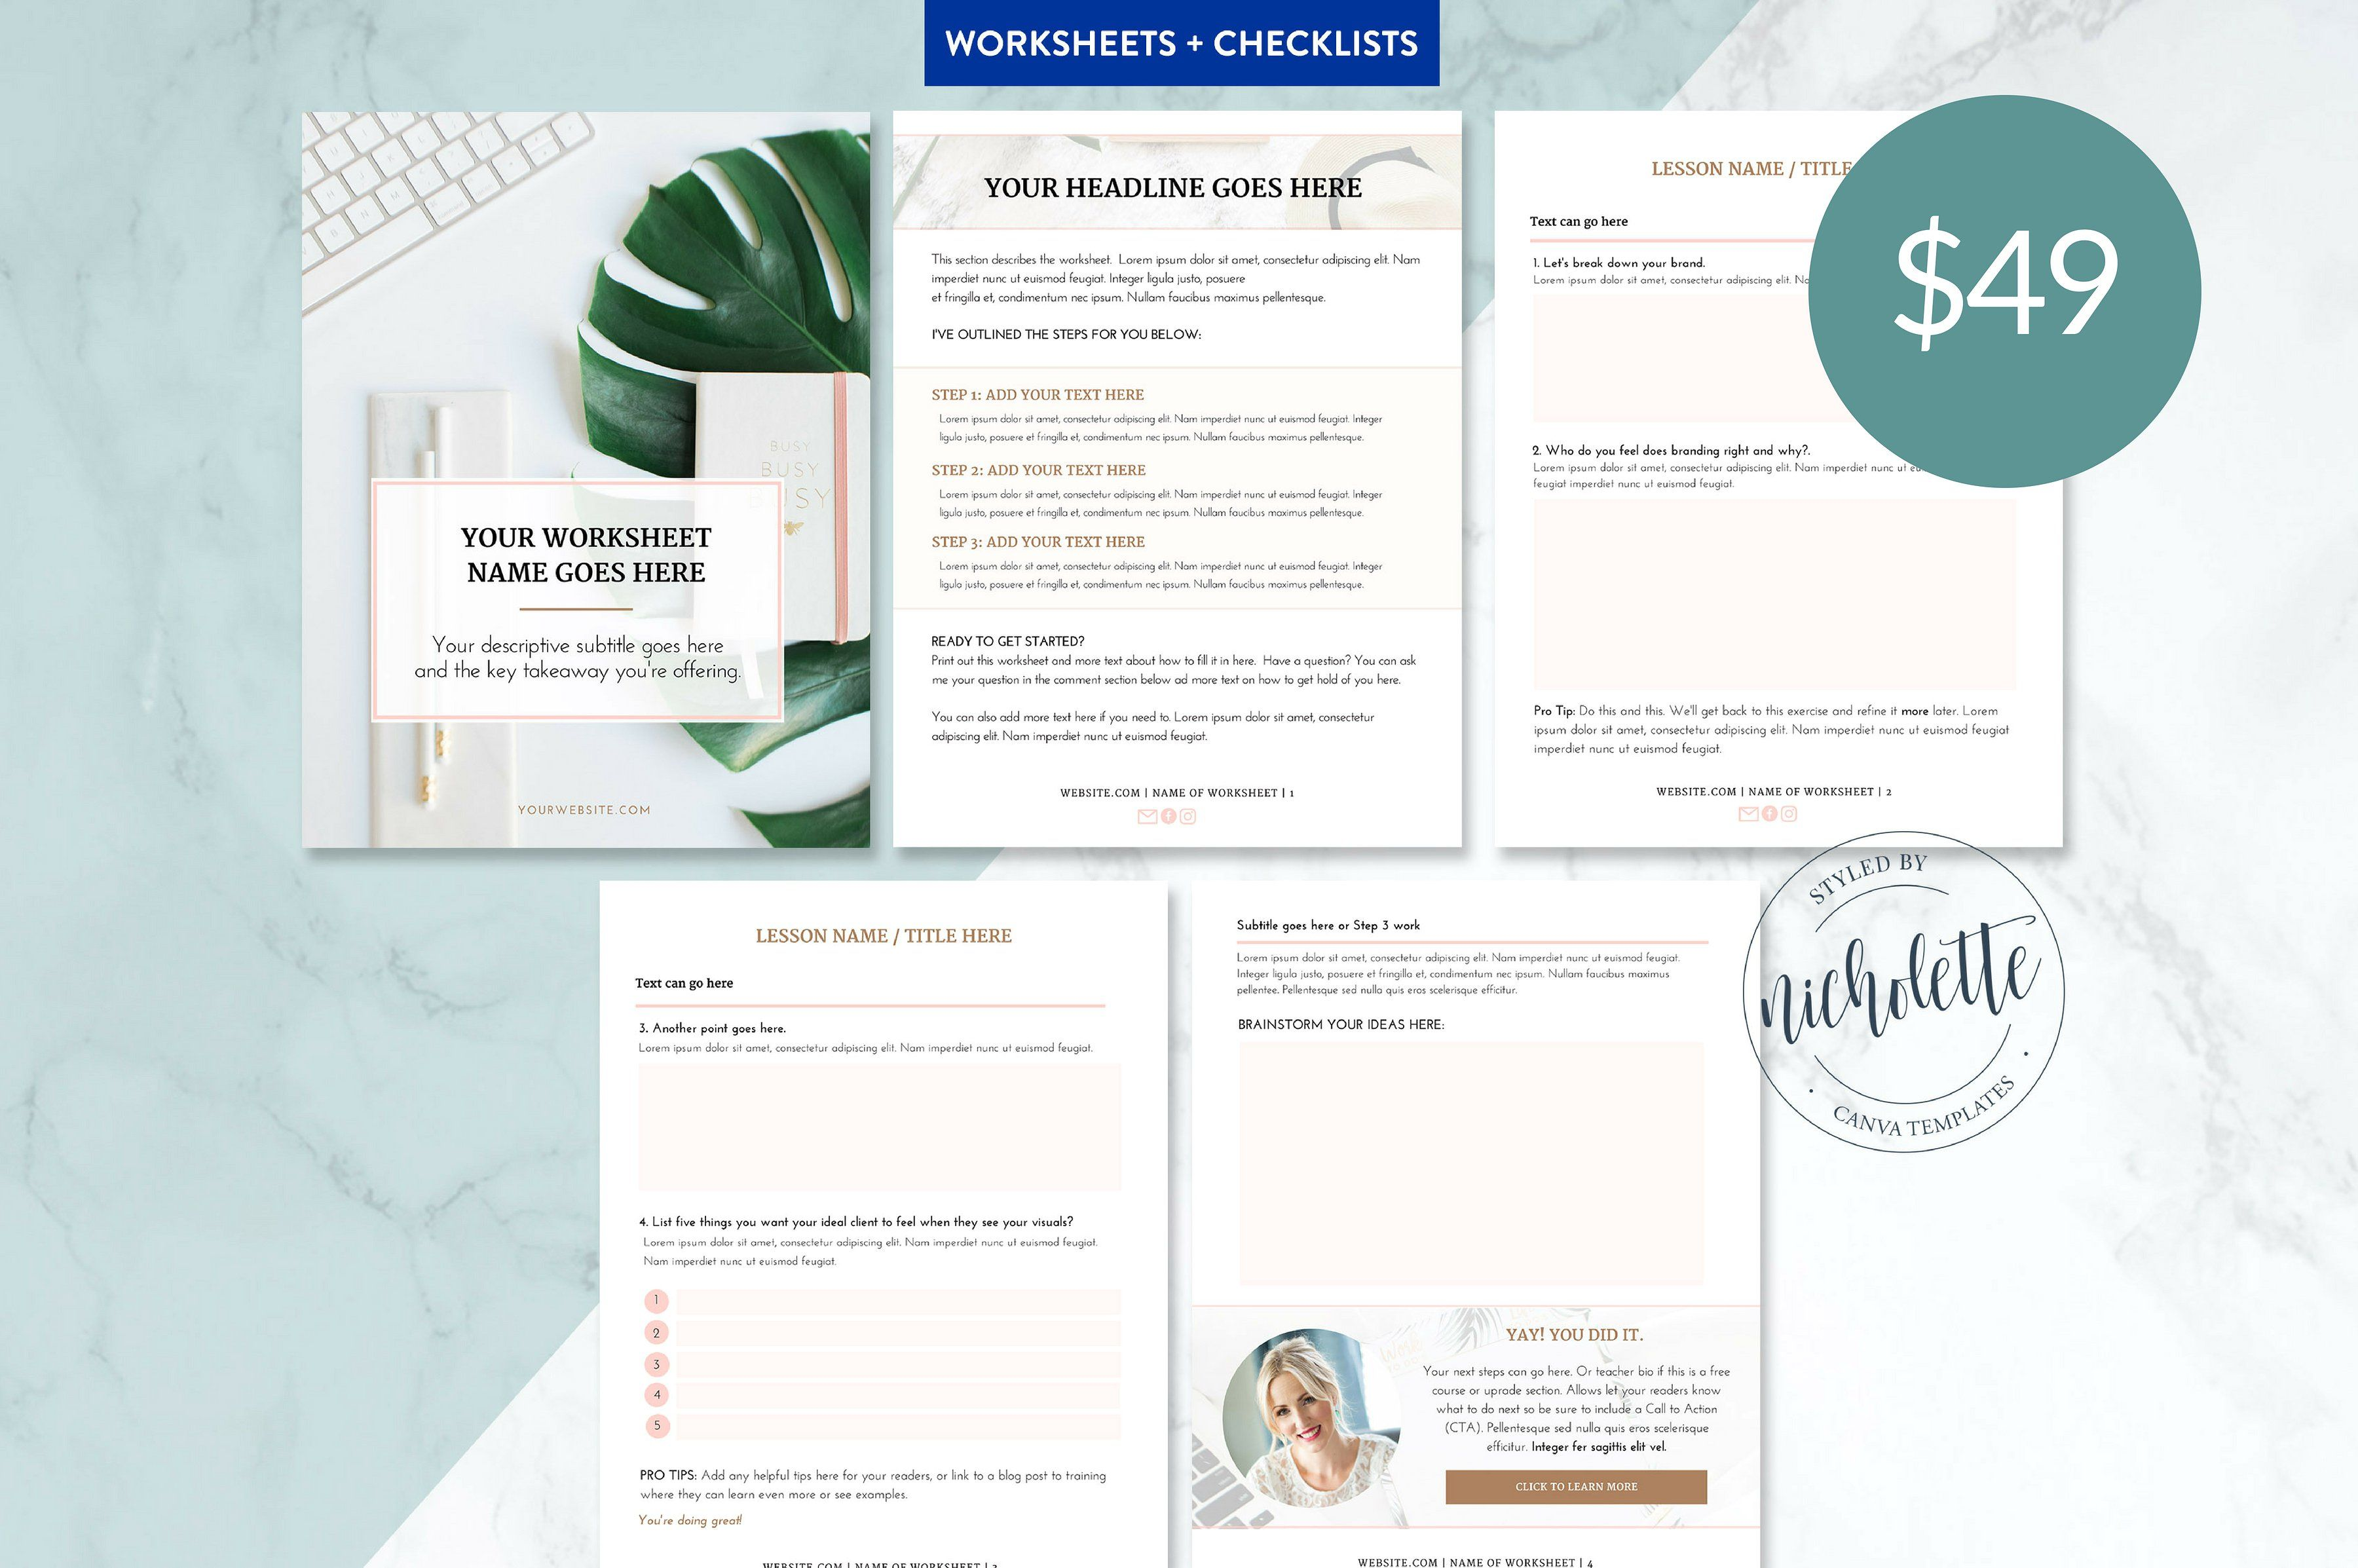 Worksheet And Checklists By Nicholette Styles On